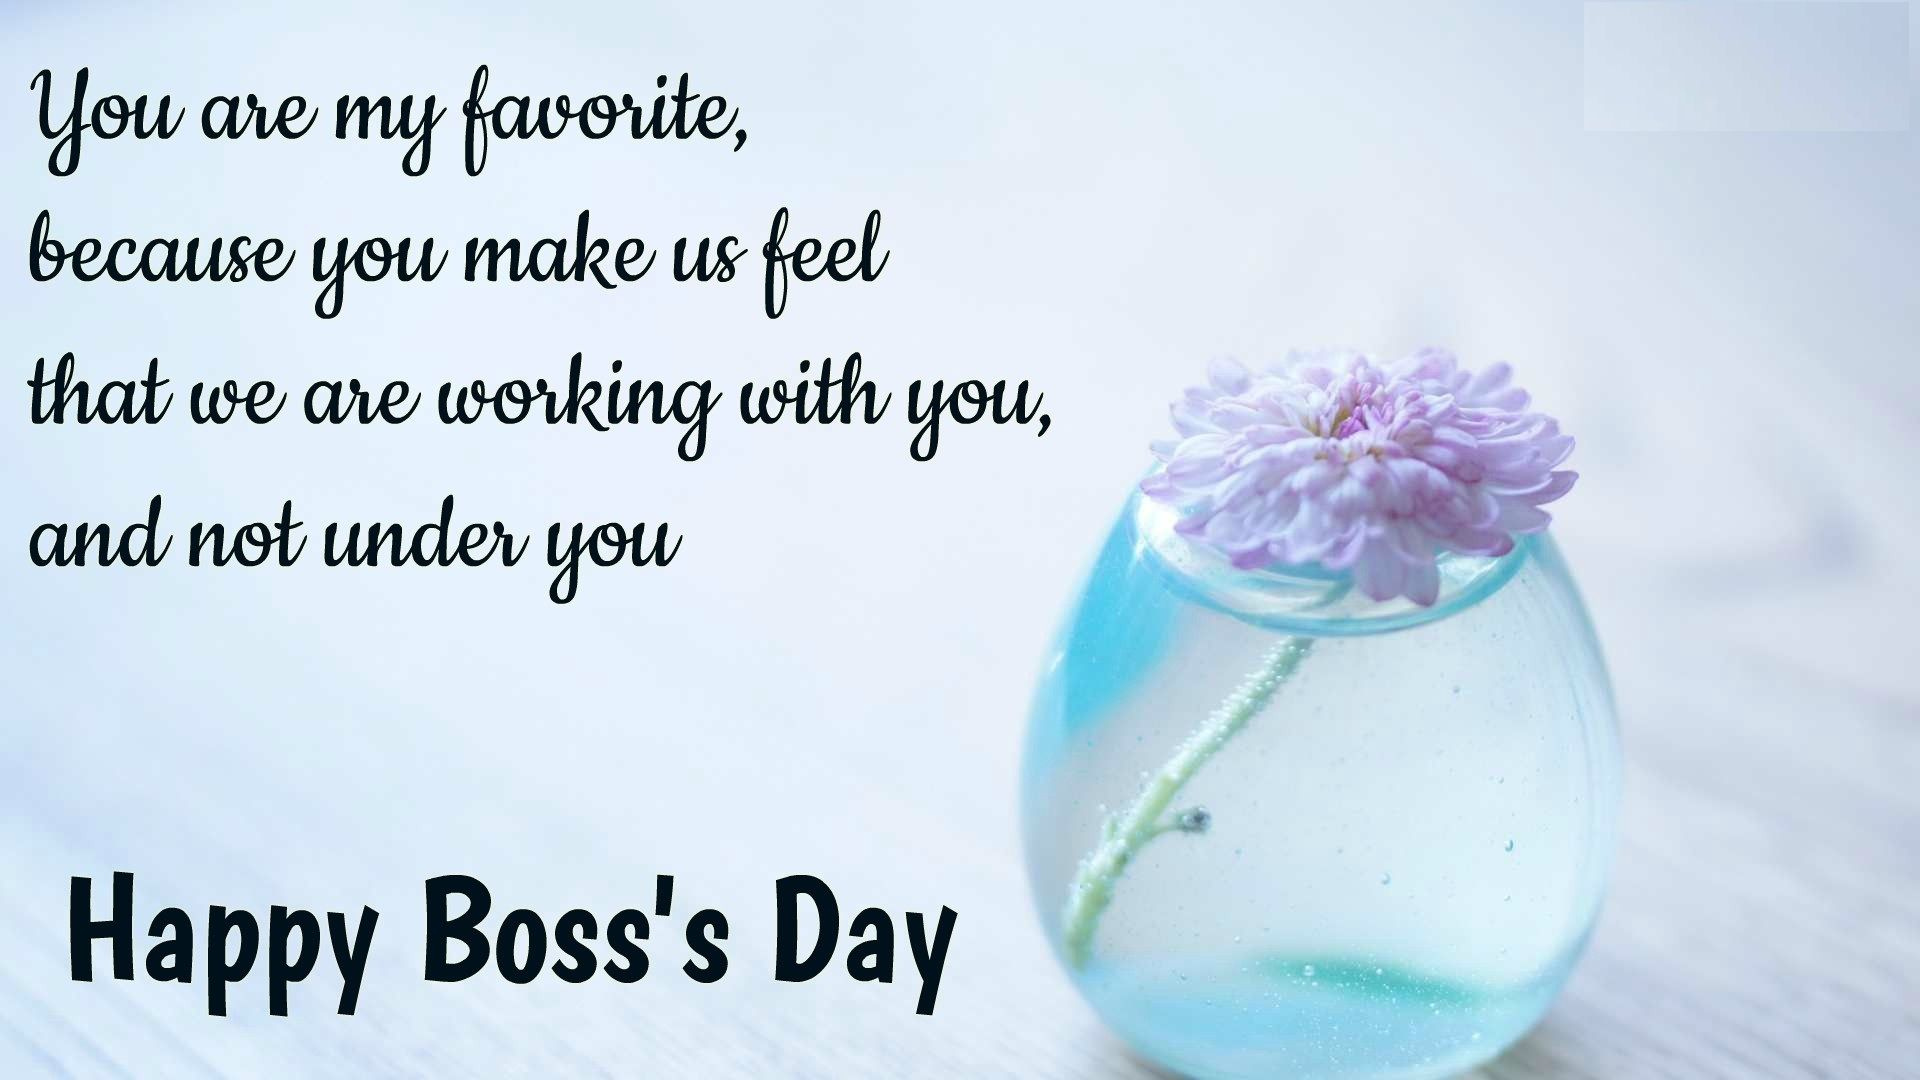 Boss Day Positive Quotes | Boss day quotes, Happy boss's day quotes, Happy  boss's day